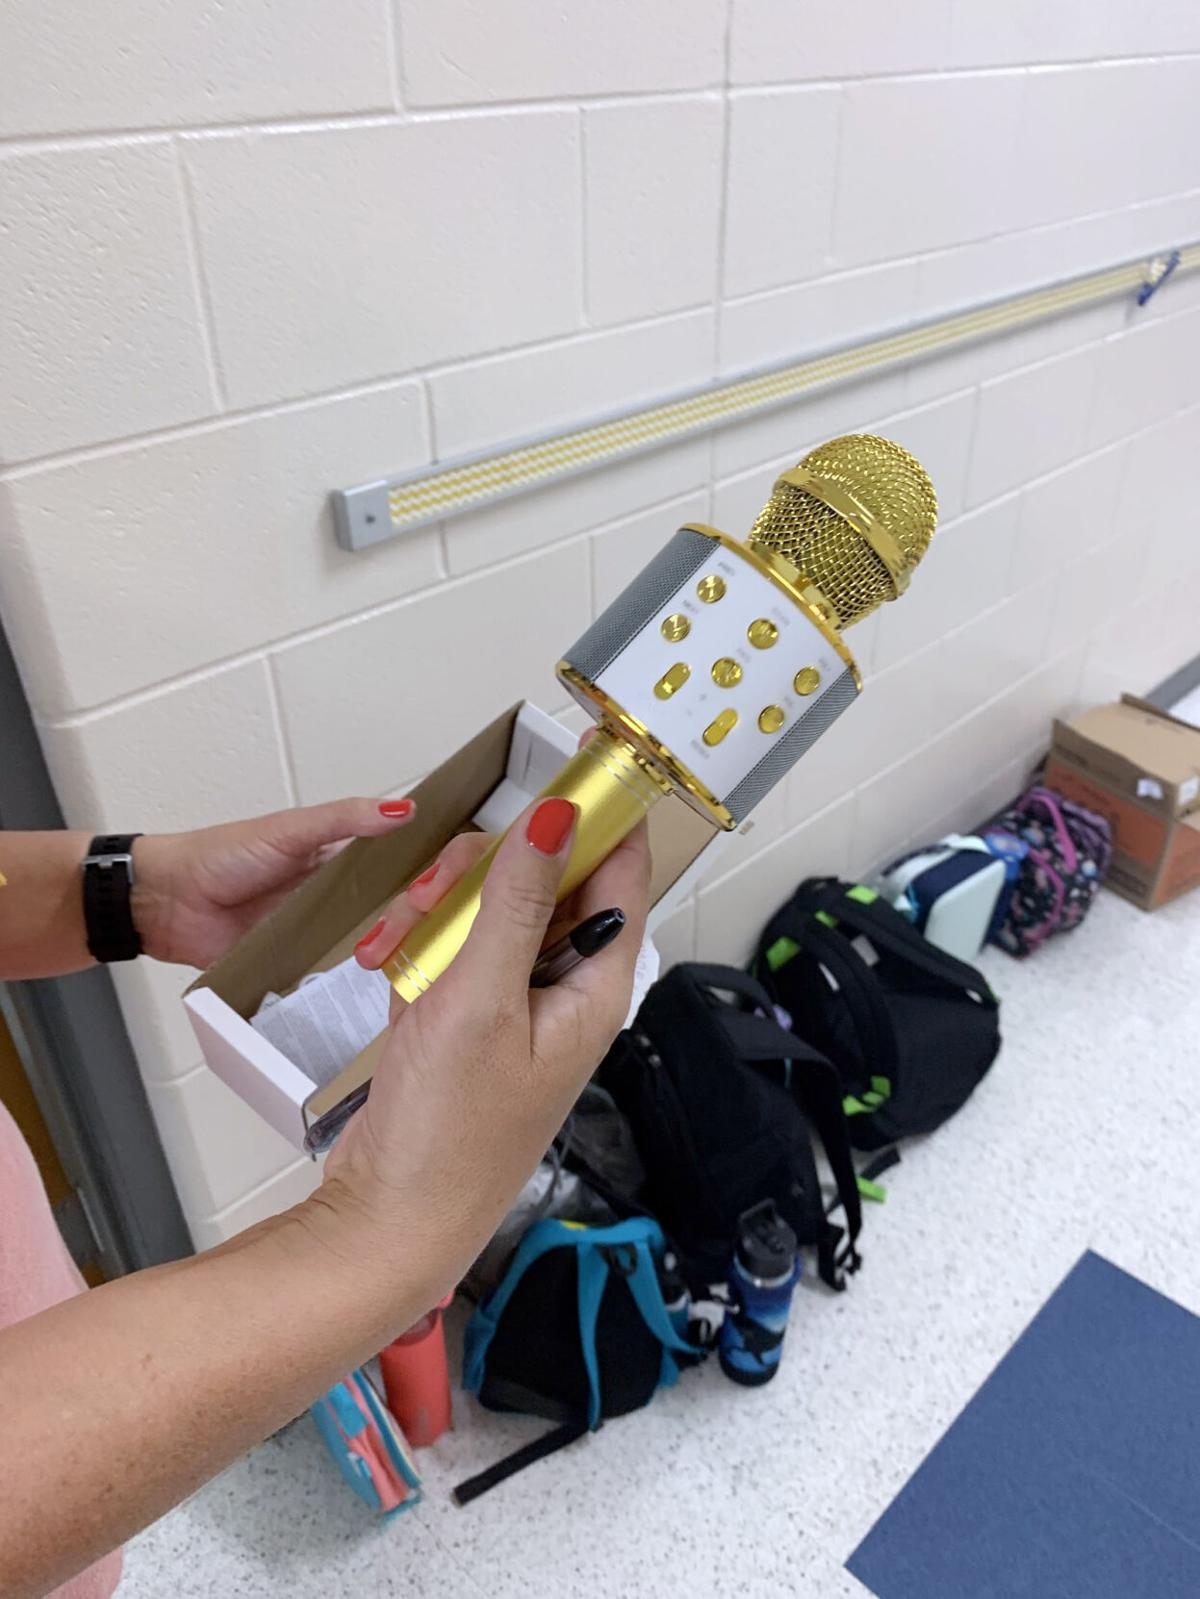 Camp Invention allows kids to 'think outside the box'